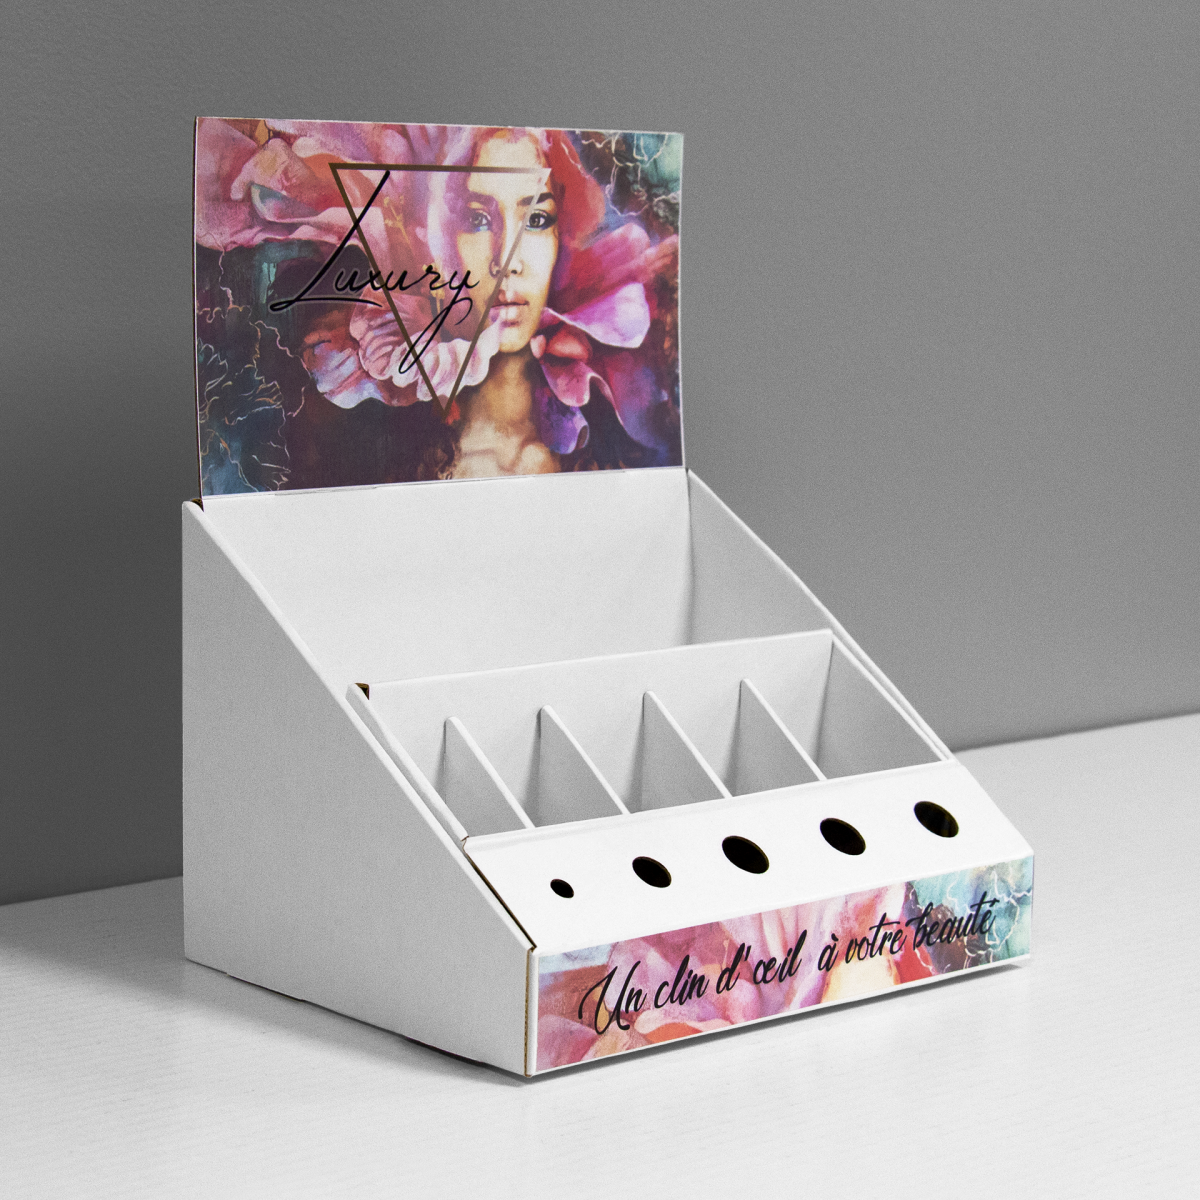 Cardboard counter display with inserts and slots for makeup products and a header - printed